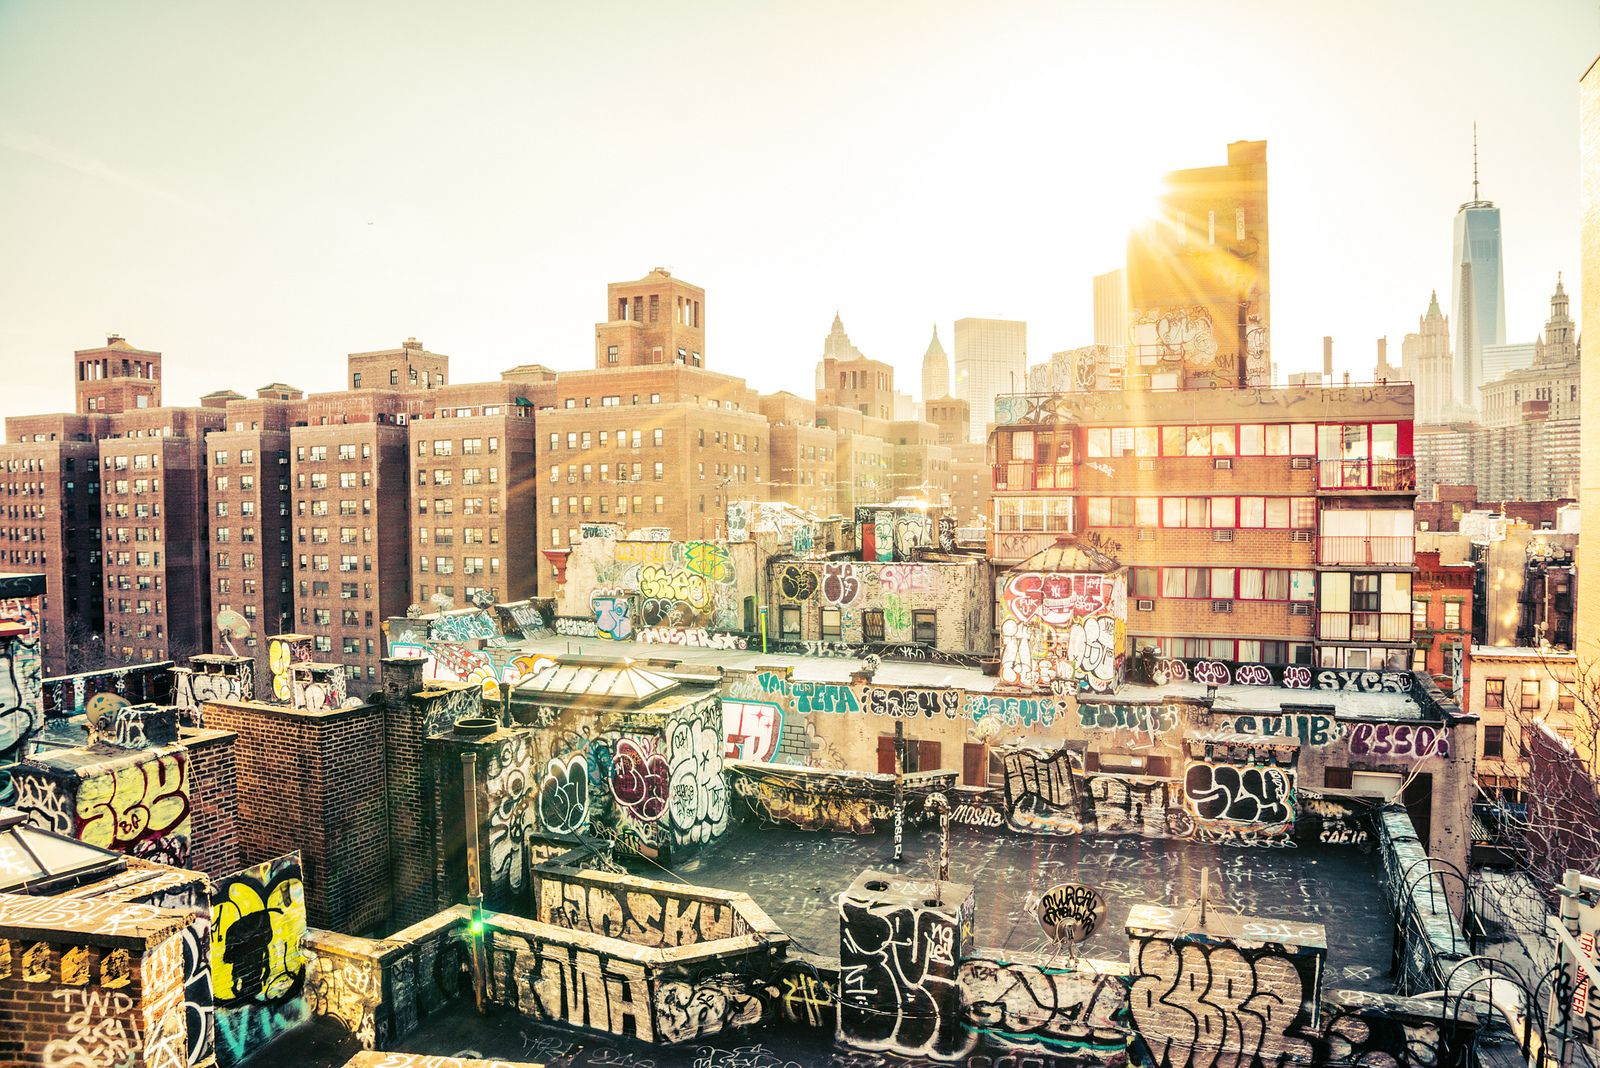 All sizes | New York City - Sunset - Chinatown Rooftop Graffiti | Flickr - Photo Sharing!